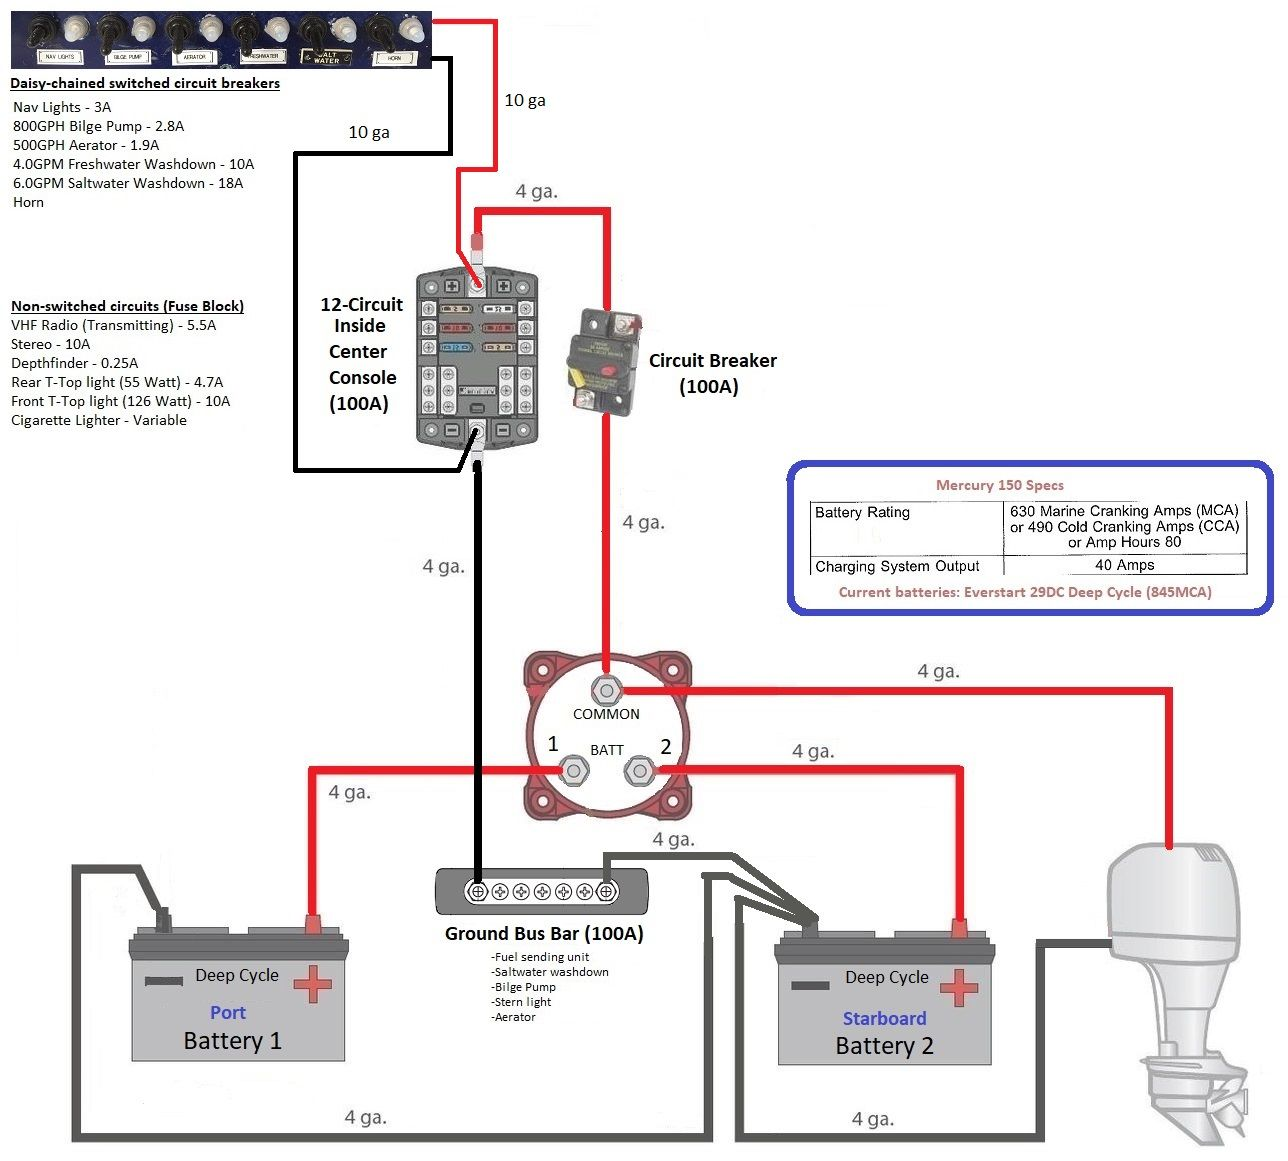 [SCHEMATICS_48IU]  Boat Wiring Basics - 1999 Harley Softail Wiring Harness Complete for Wiring  Diagram Schematics | Vip Boat Wiring Diagram |  | Wiring Diagram Schematics